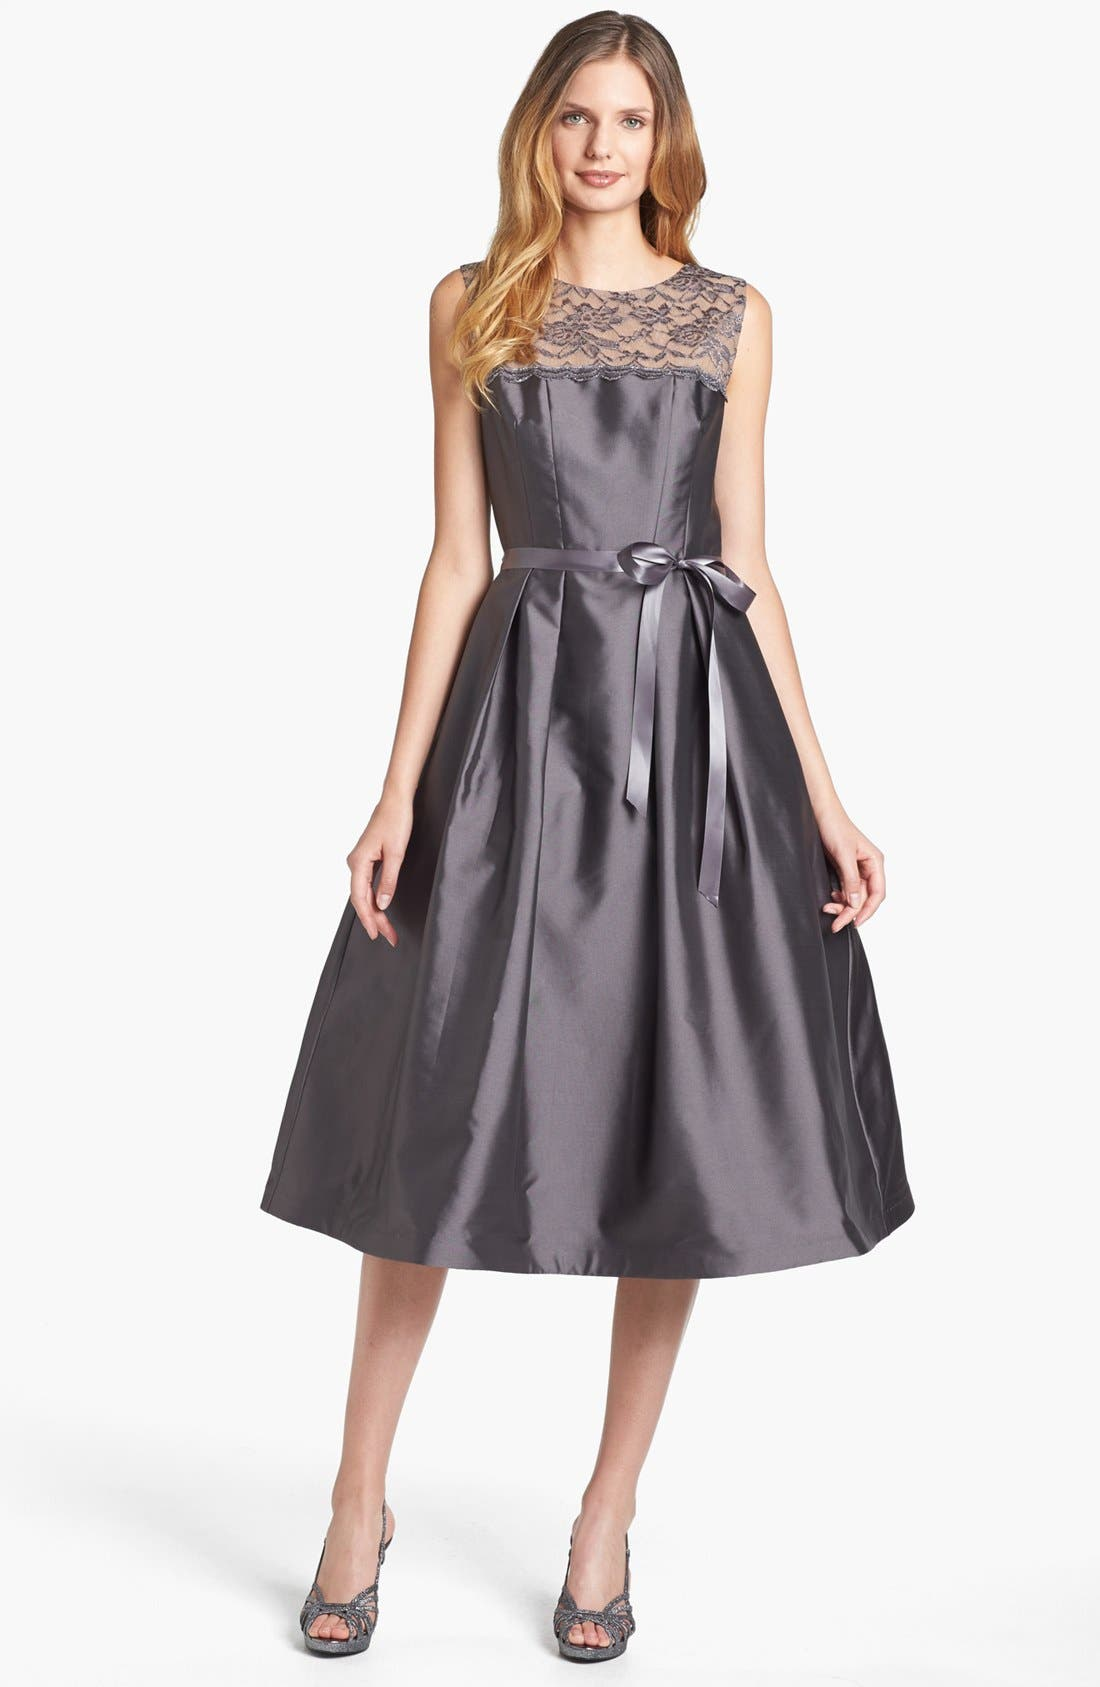 Main Image - Alex Evenings Illusion Yoke Satin Fit & Flare Dress